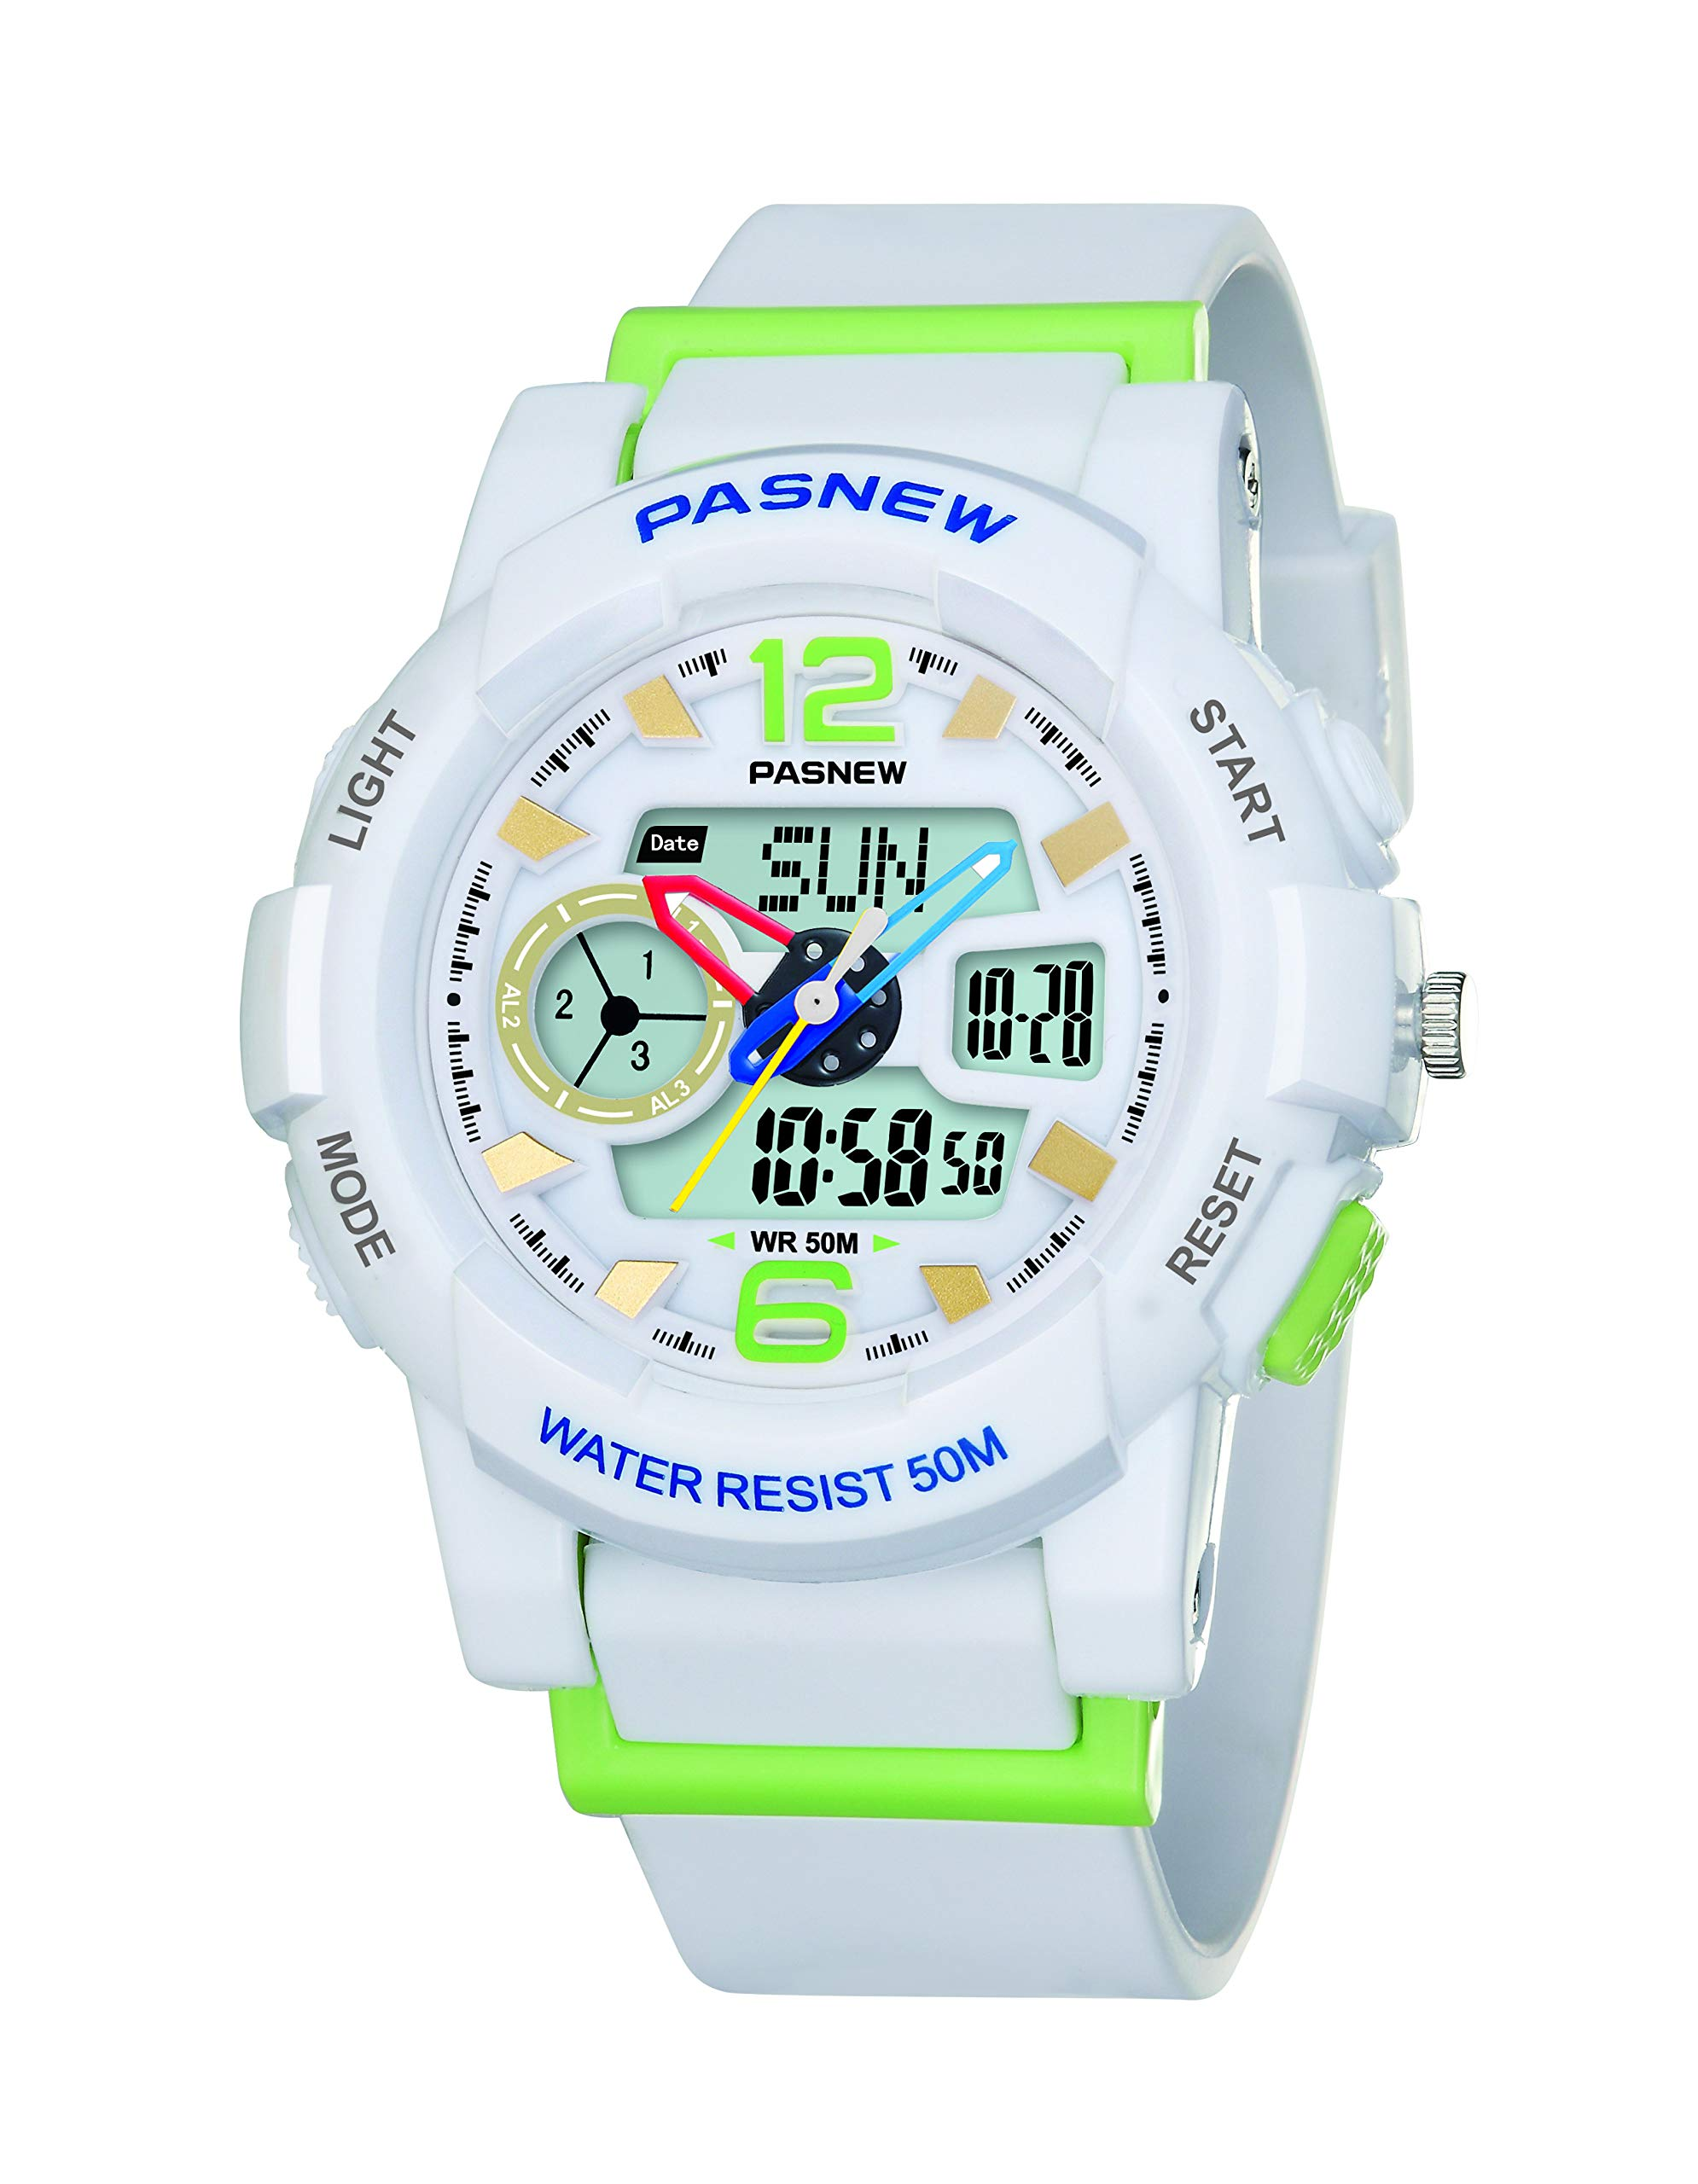 PASNEW Kid Watch Multi Function Digital-Analog Sport Watches for 8-Year Old or Above children-486White by PASNEW